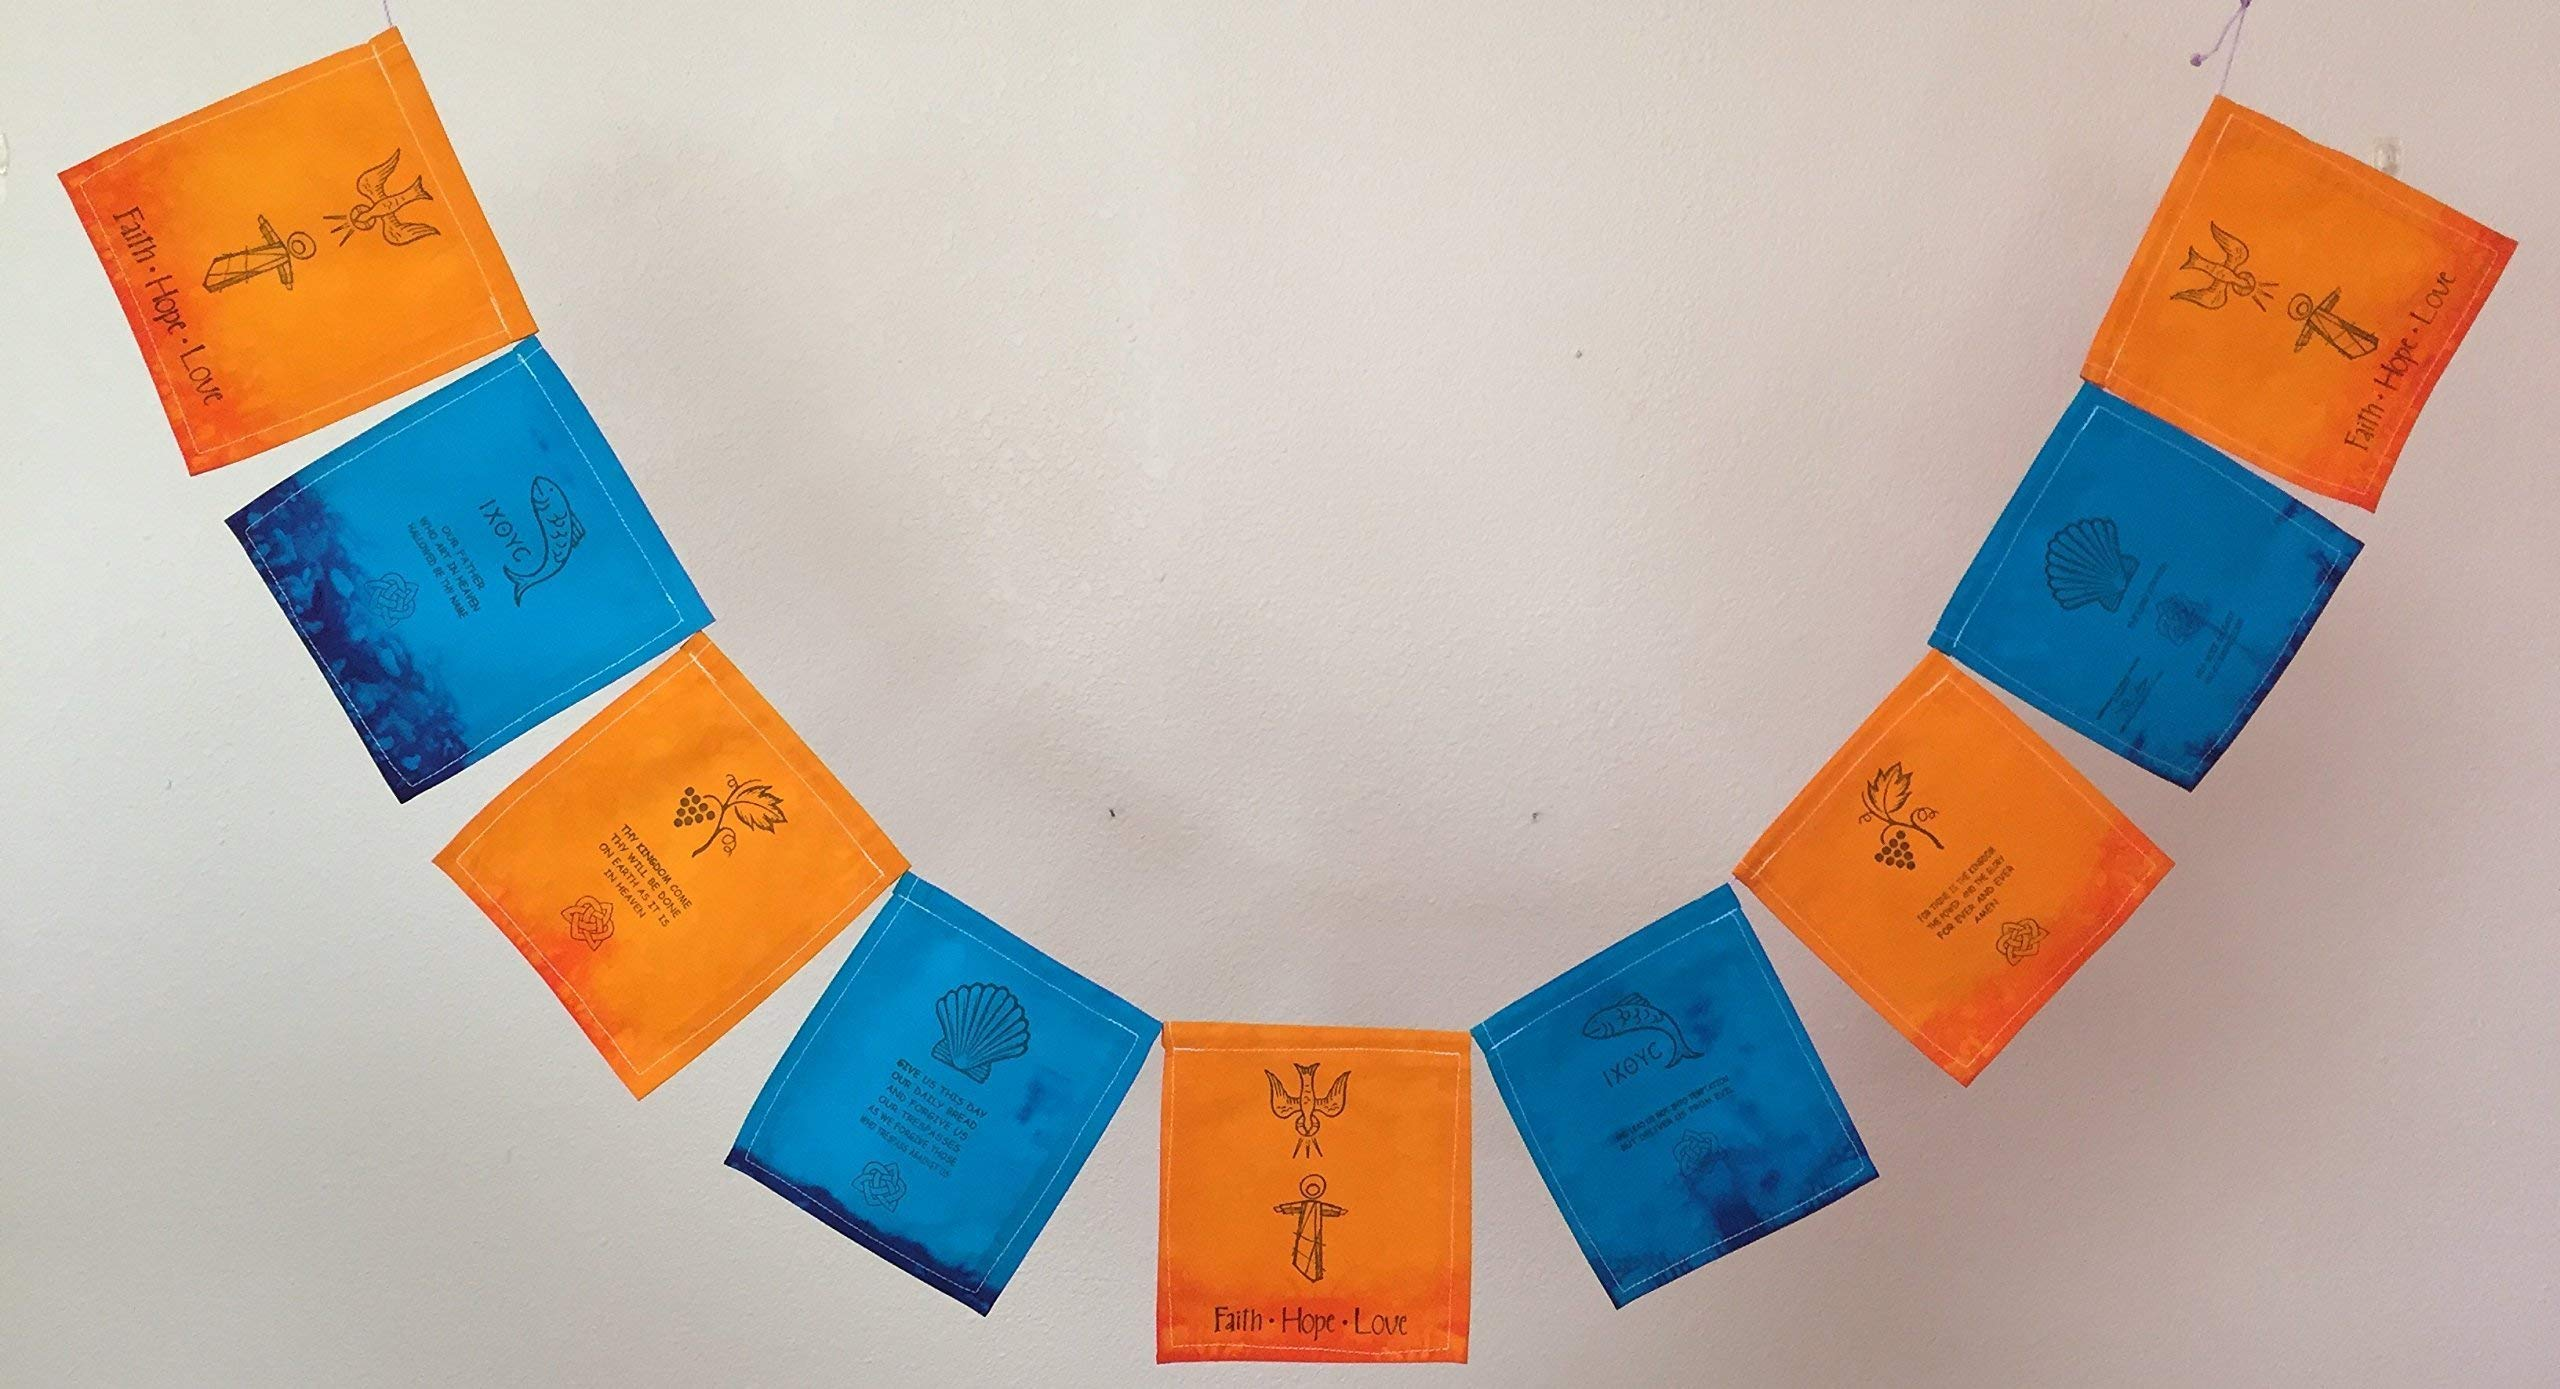 The Lord's Prayer Christian Prayer Flag. Matthew 6:9-13,''Our Father, Who art in heaven.''